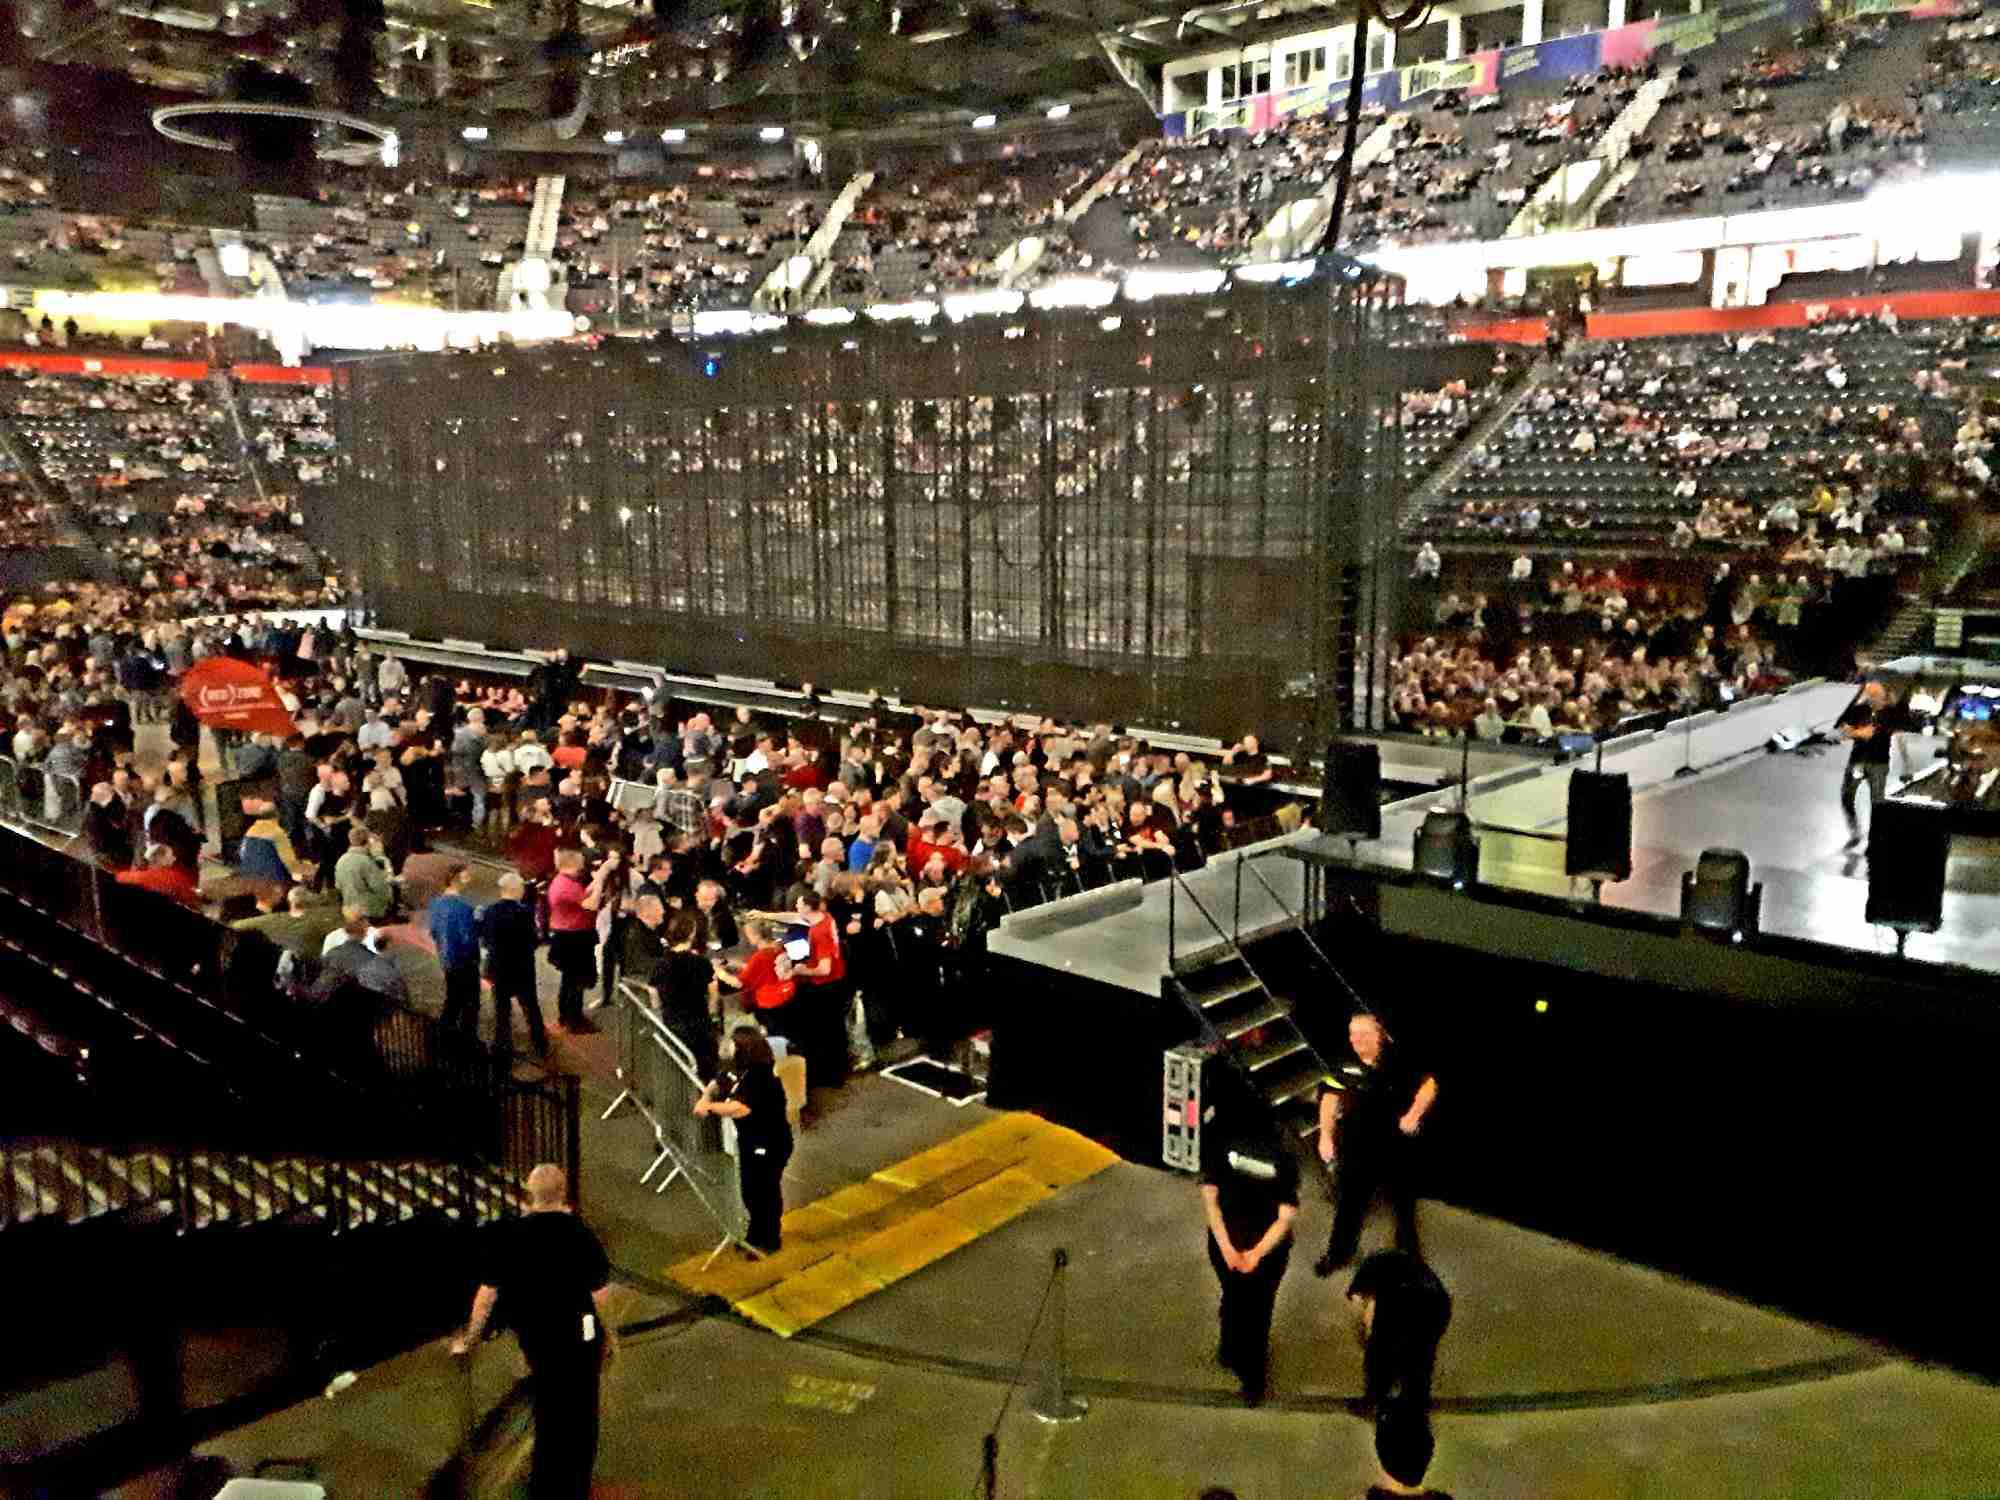 View from Seat Block 117 at Manchester Arena